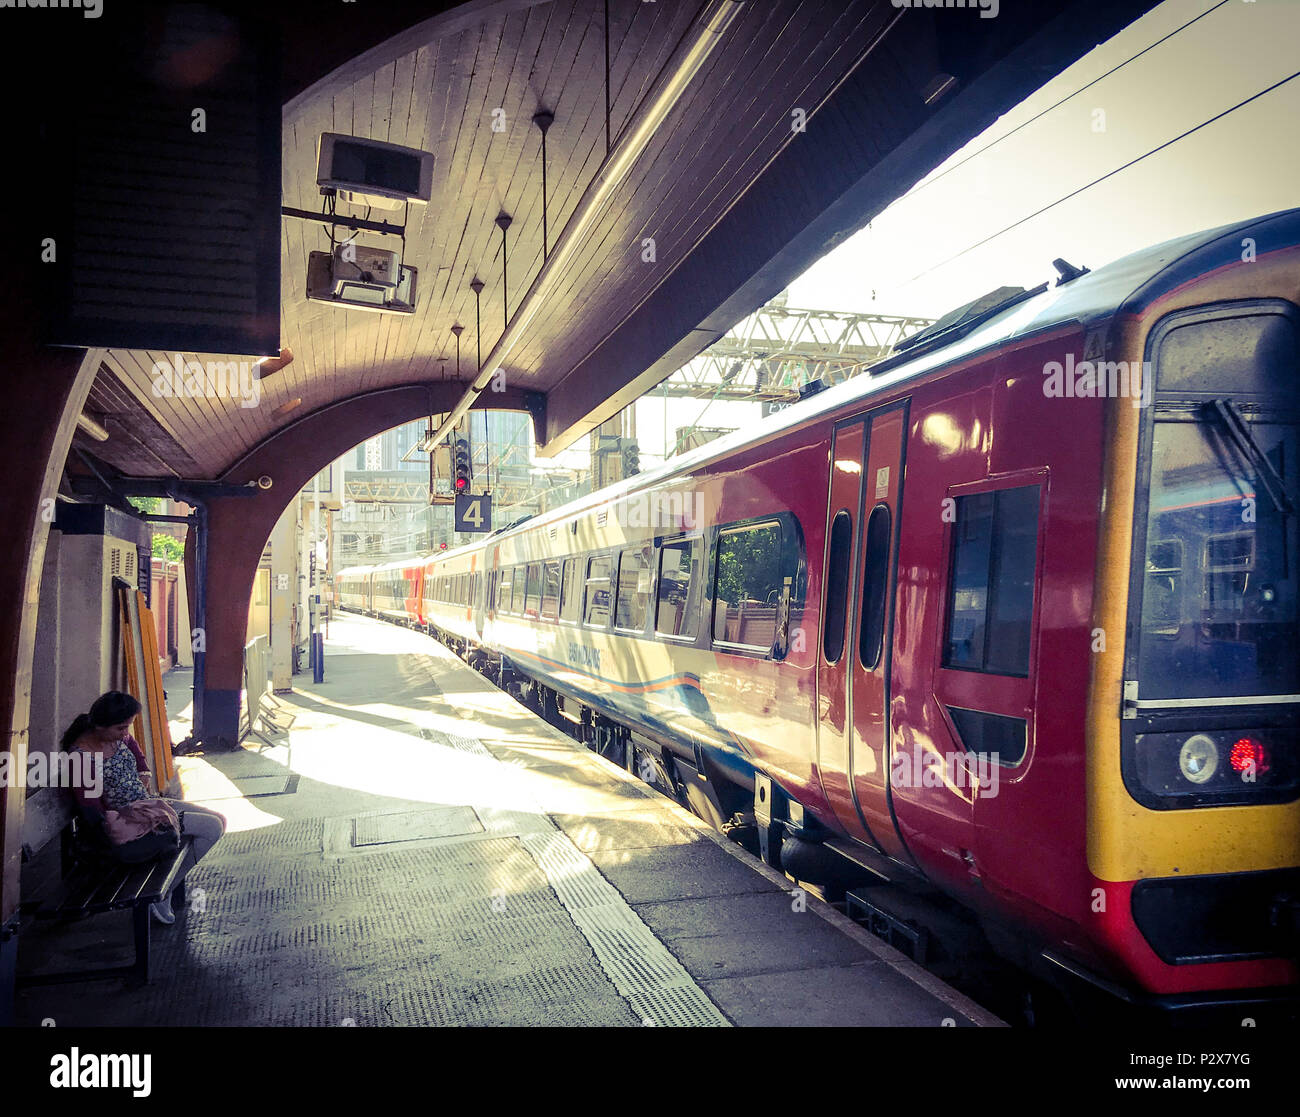 GoTonySmith,@HotpixUK,arriving,rail,North West England,UK,atmospheric,Oxford Street,city centre,GMPTE,integrated transport,Oxford Road Platform,architecture,drama,dramatic,station,Northern,Northern Rail,MSJAR,investment,lines,wood,wooden,TOC,morning,canopies,canopy,roof,cover,William Robert Headley,Max Clendinning,curve,curves,innovative building,building,inside,platform,conoid shell roofing,timber,structure